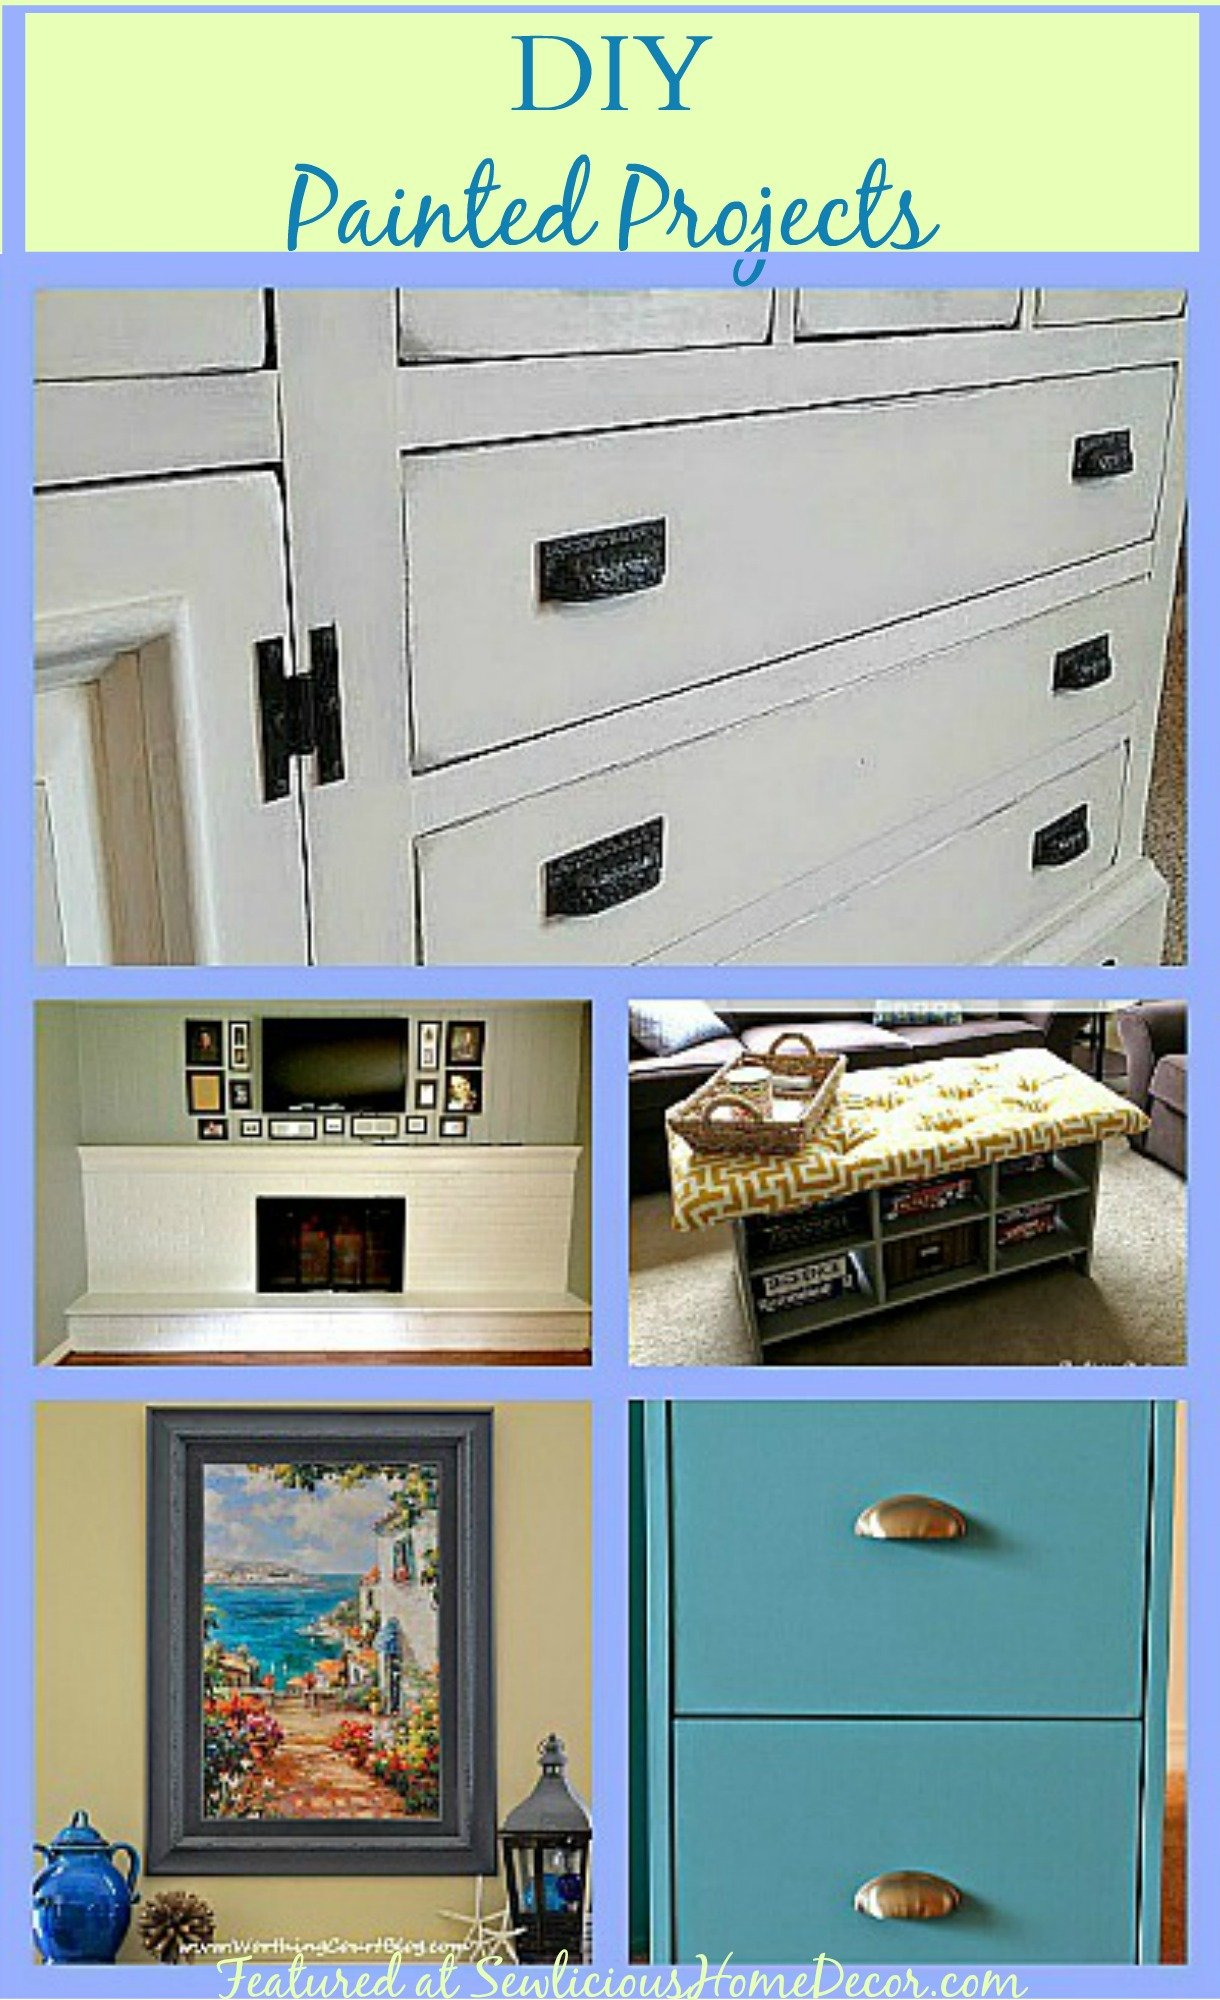 DIY Painted Project